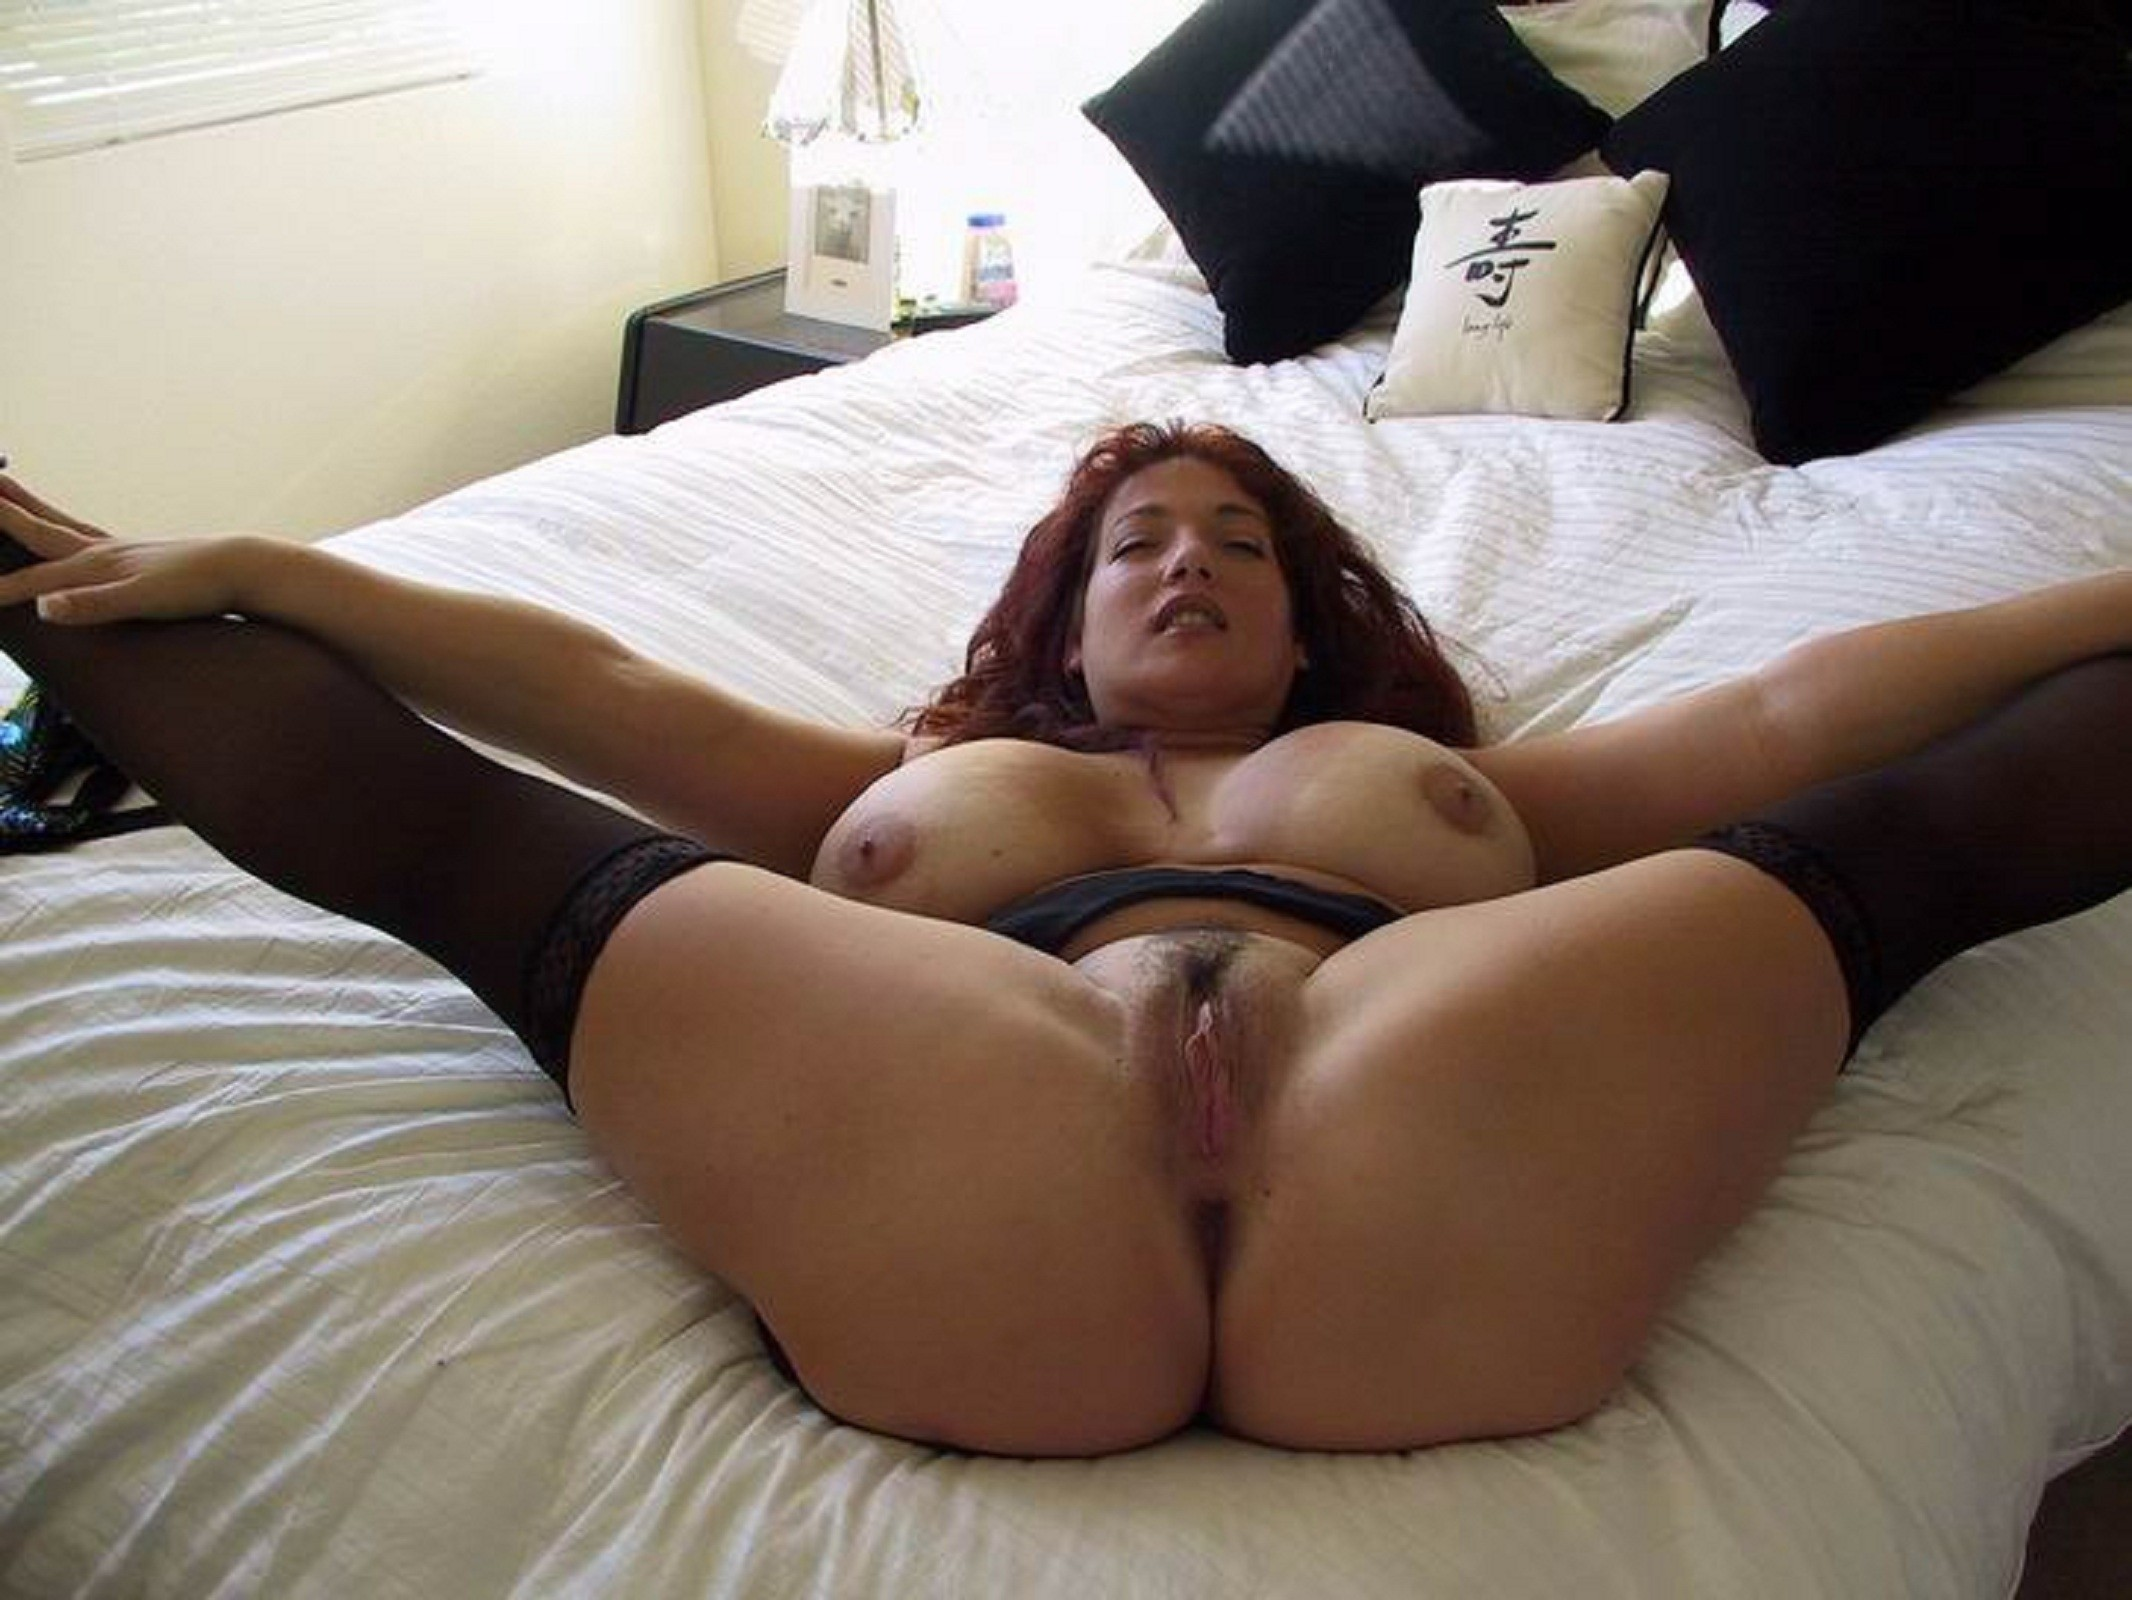 thighs latina legs thick open pussy tumblr